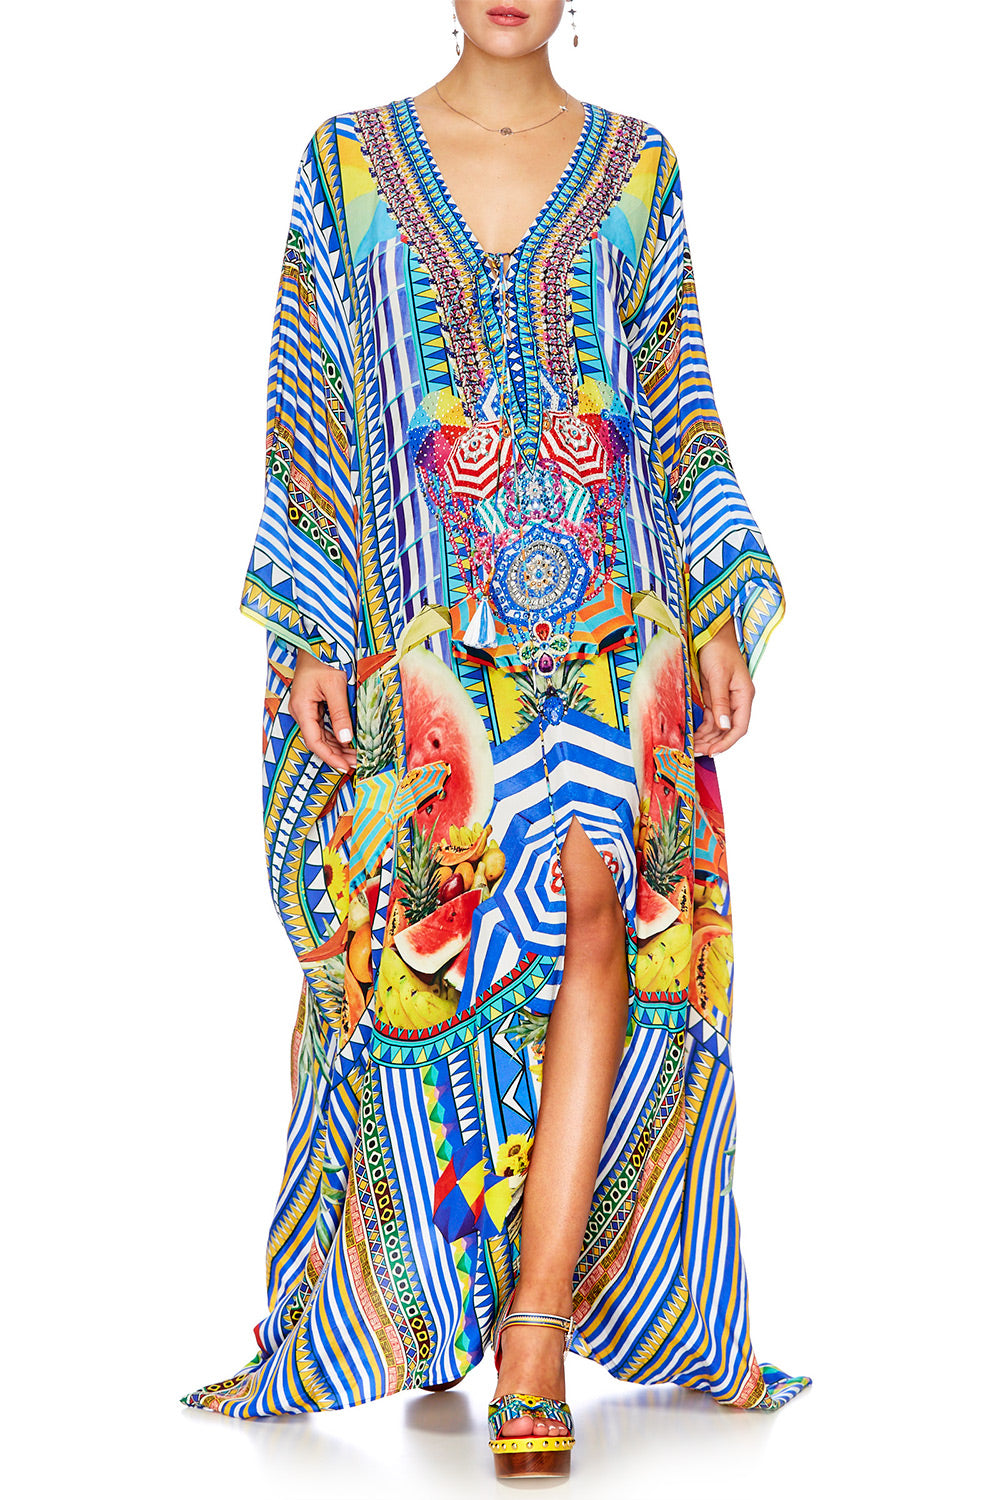 BOOK A SHADE SPLIT HEM LACE UP KAFTAN